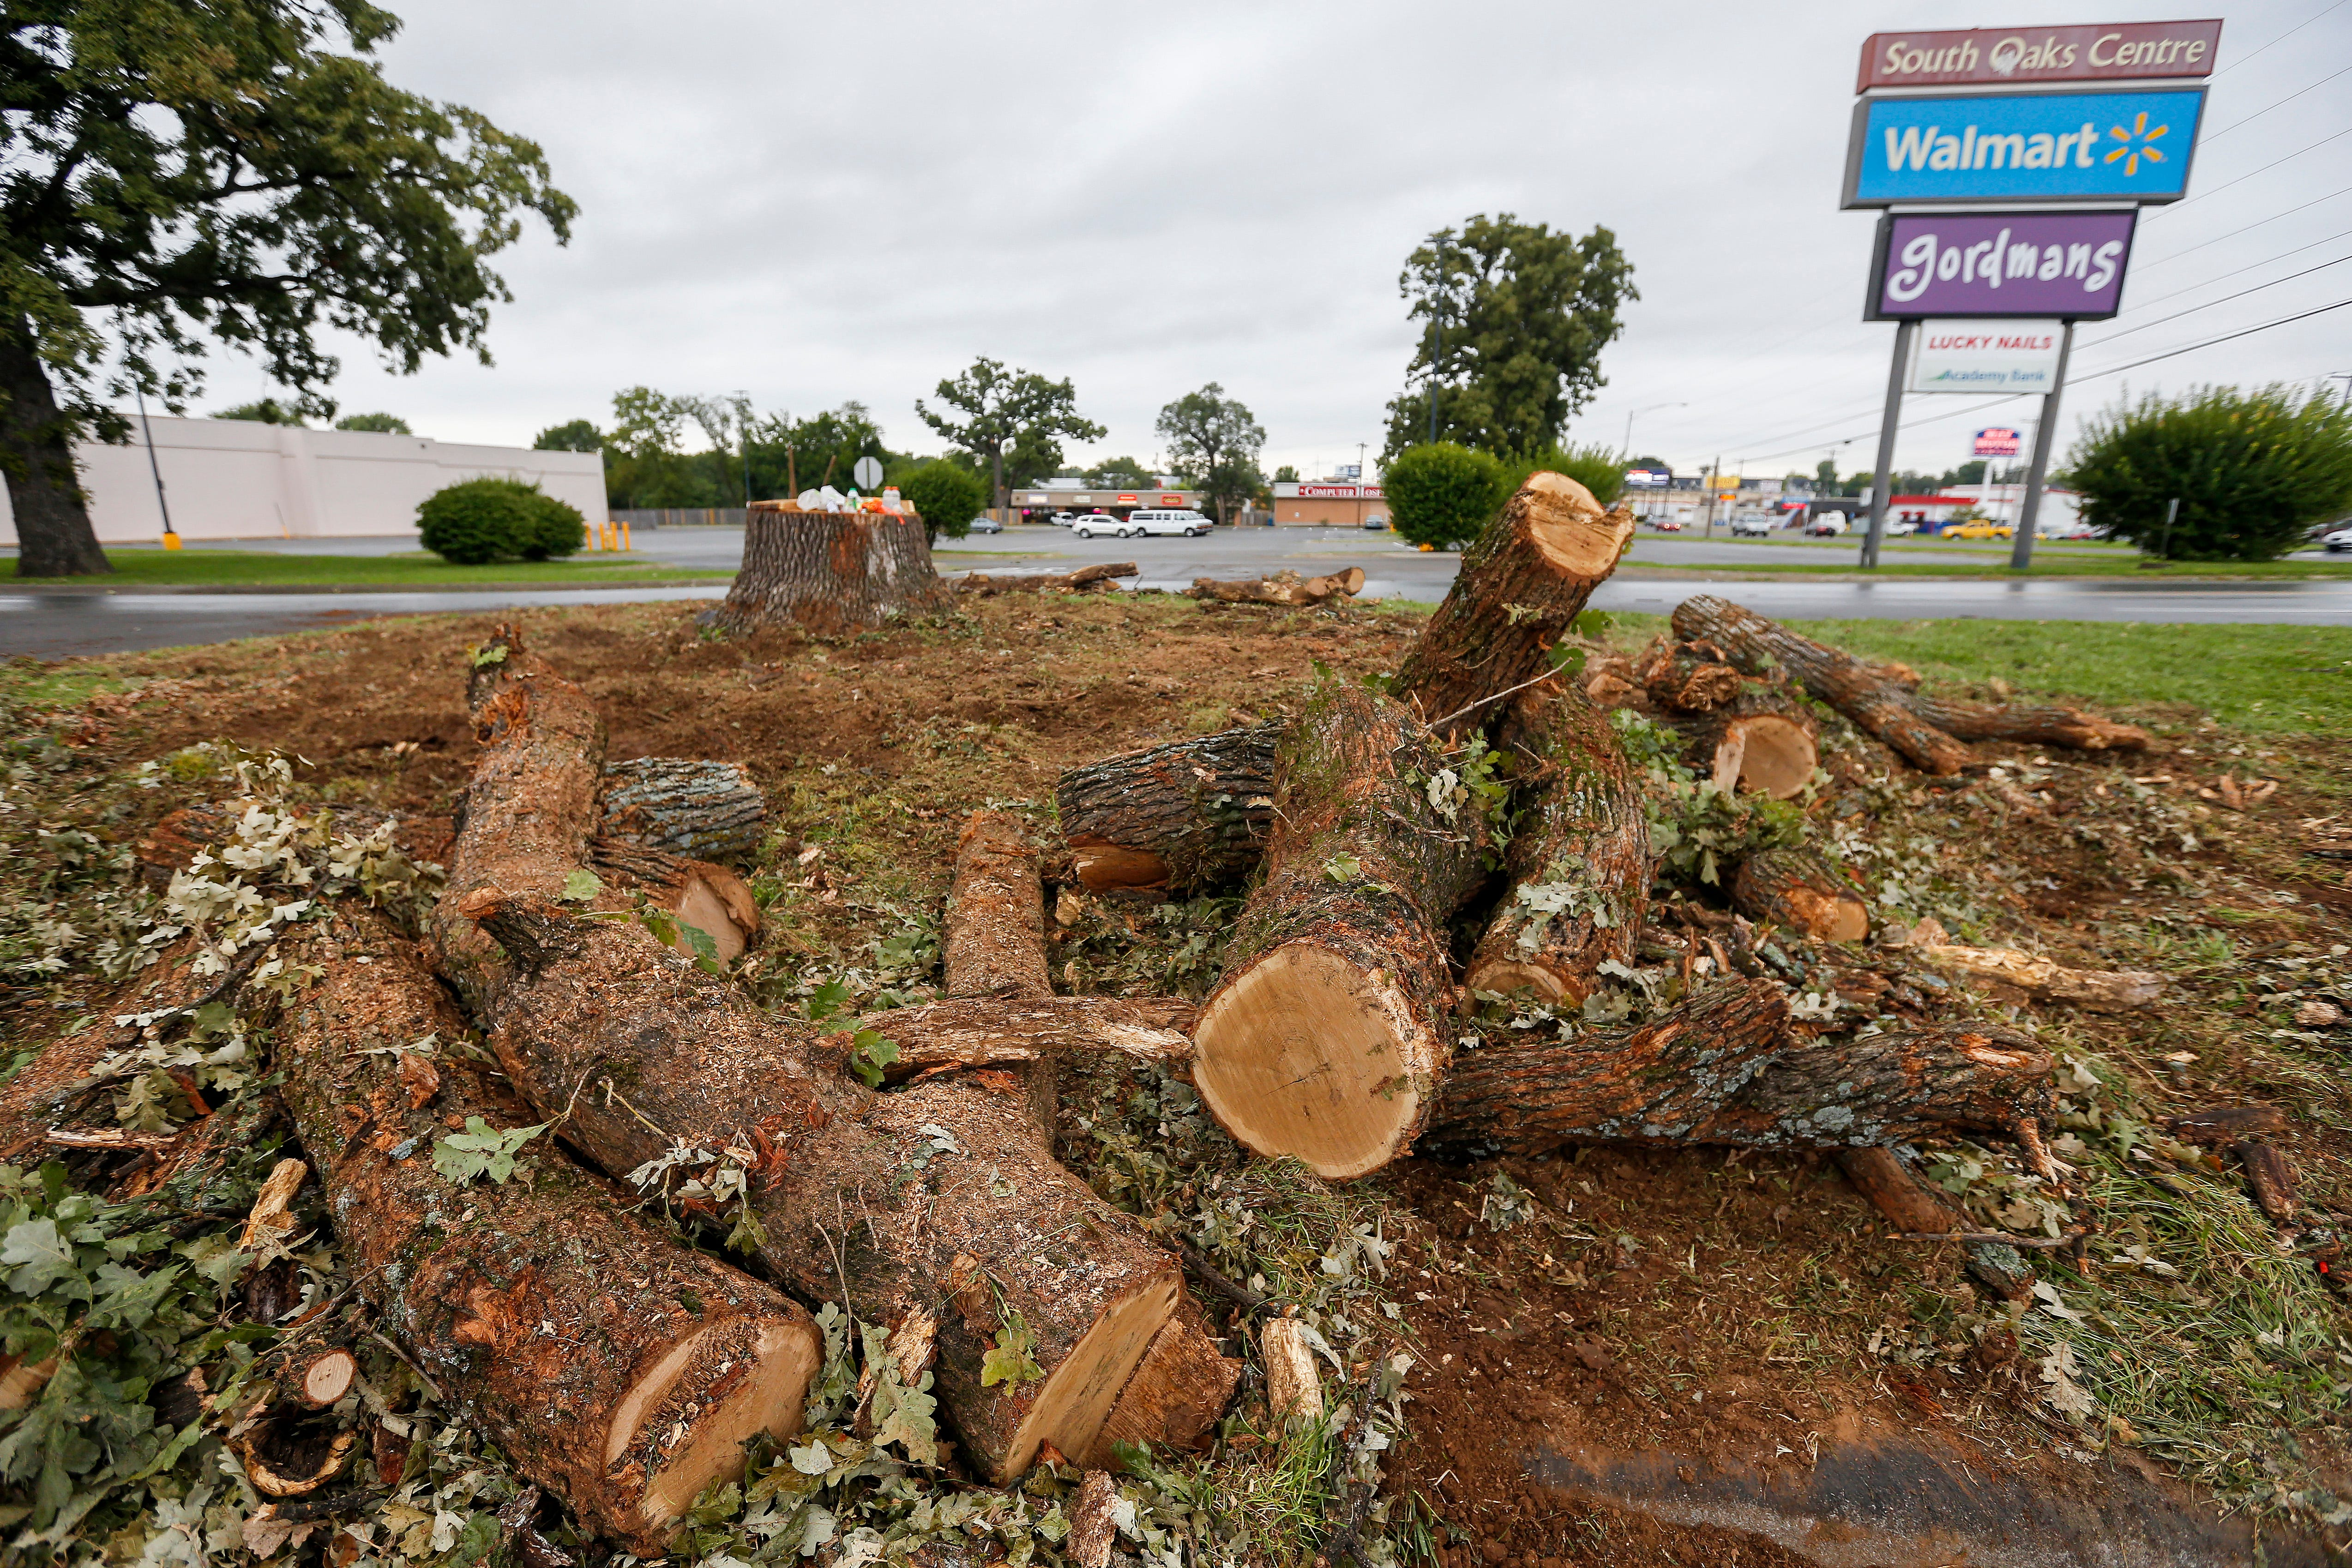 The remnants of a bur oak tree that got its start in 1859 was recently cut down at the South Oaks Center due to lightning strikes.